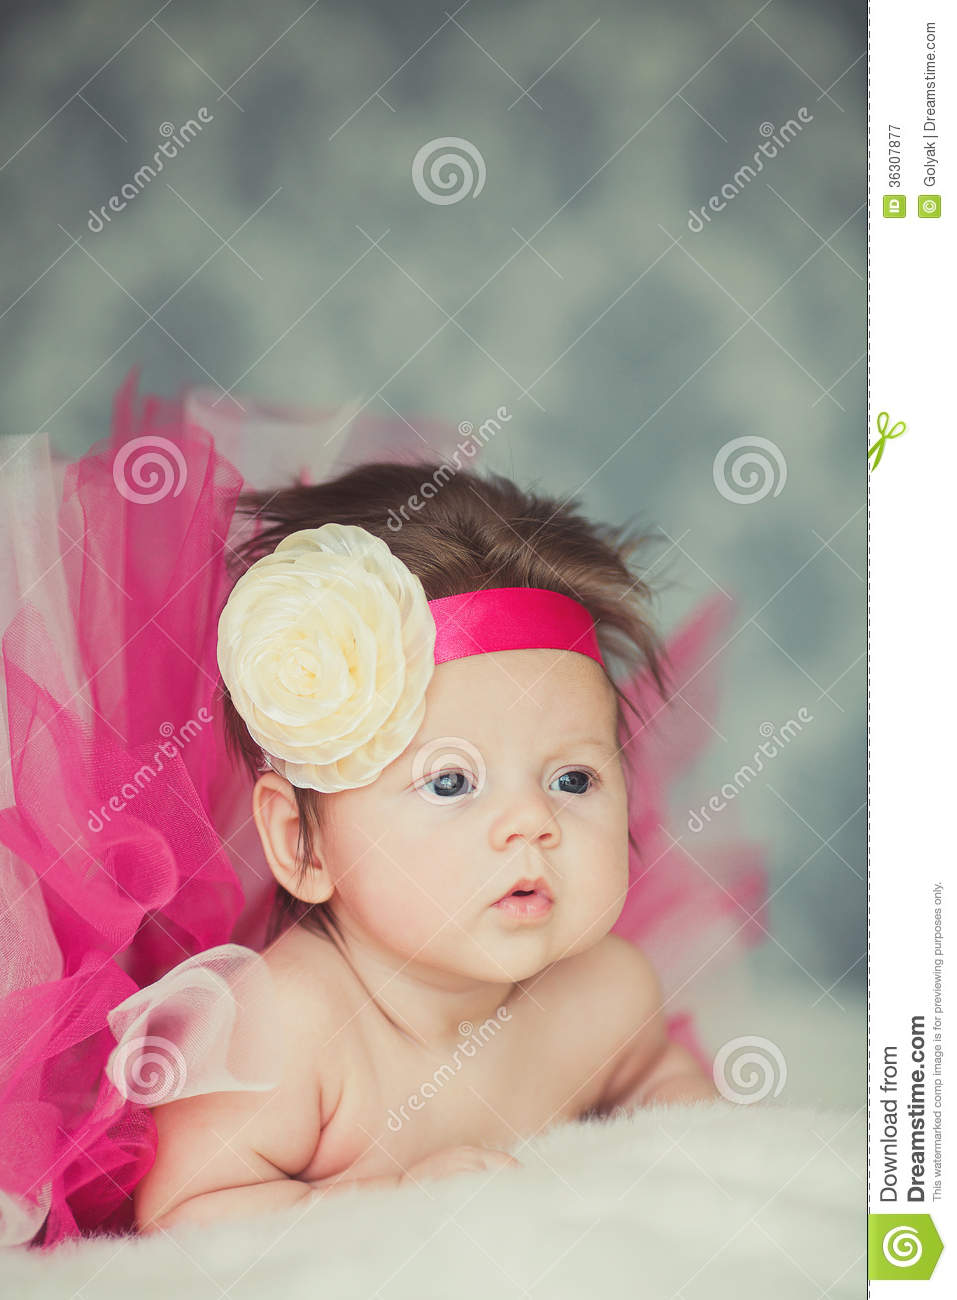 portrait of very sweet little baby girl stock image - image of child